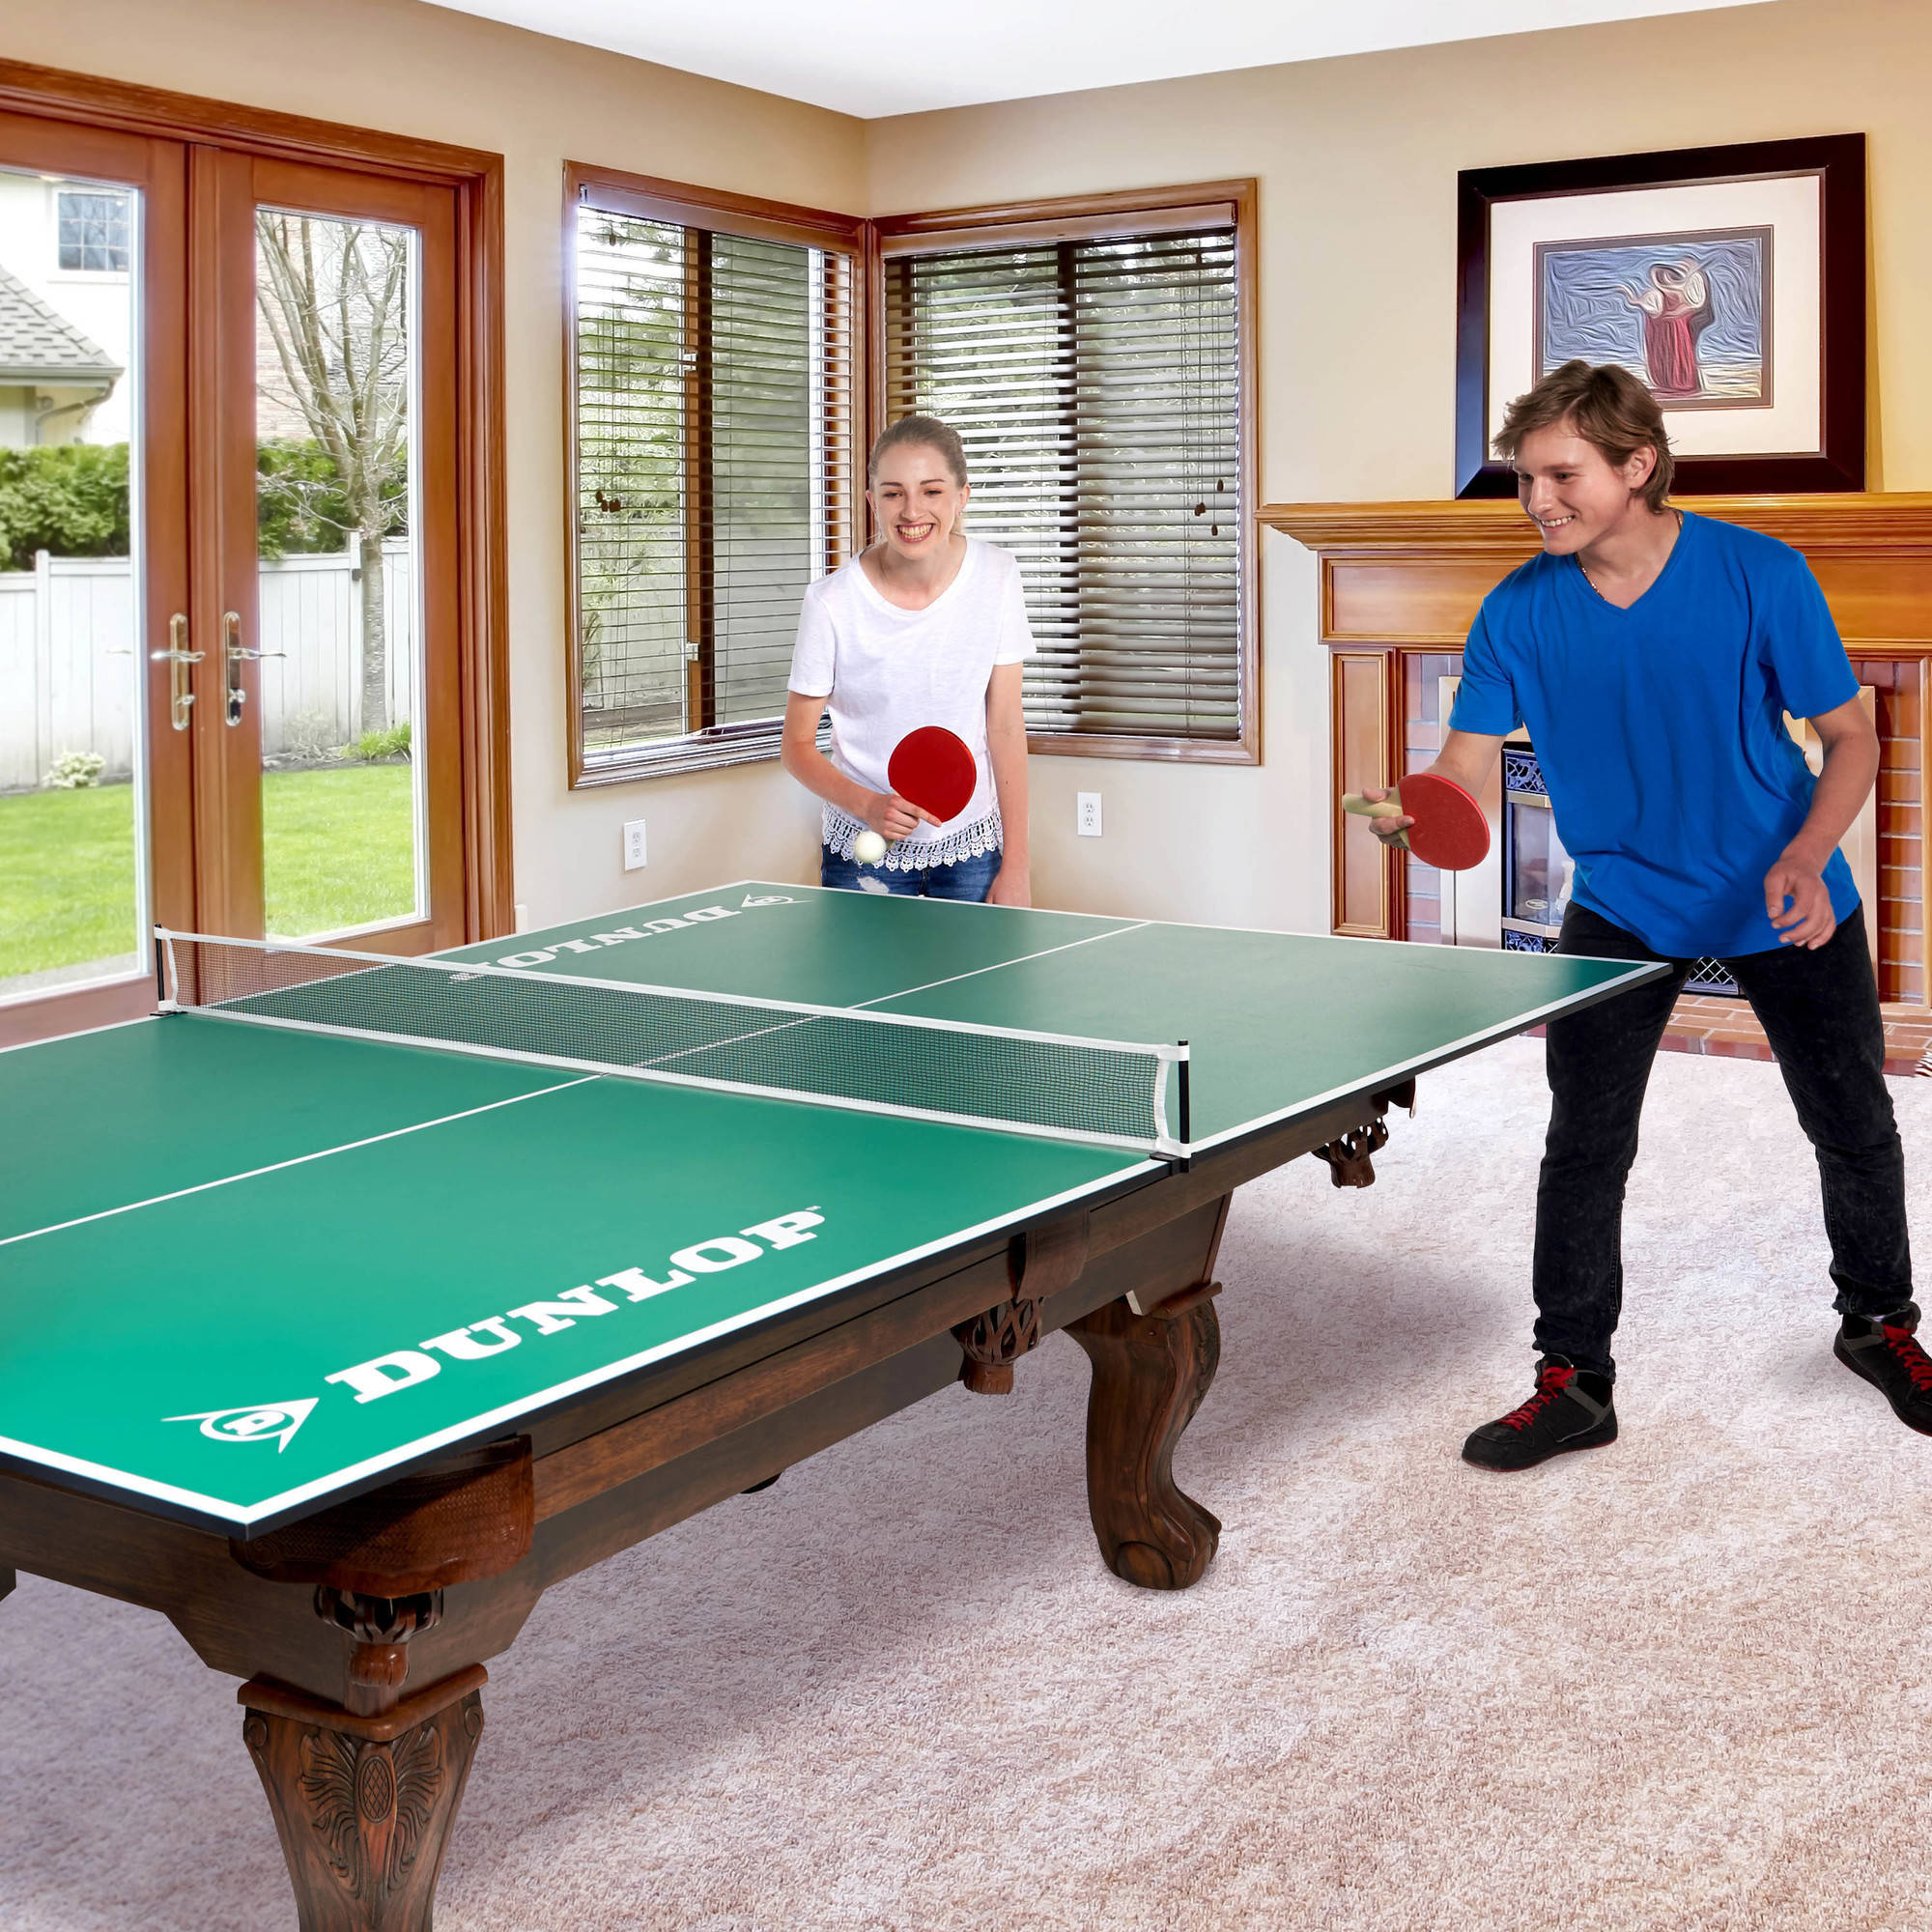 DUNLOP Official Size Table Tennis Conversion Top Walmartcom - Convert indoor pool table to outdoor